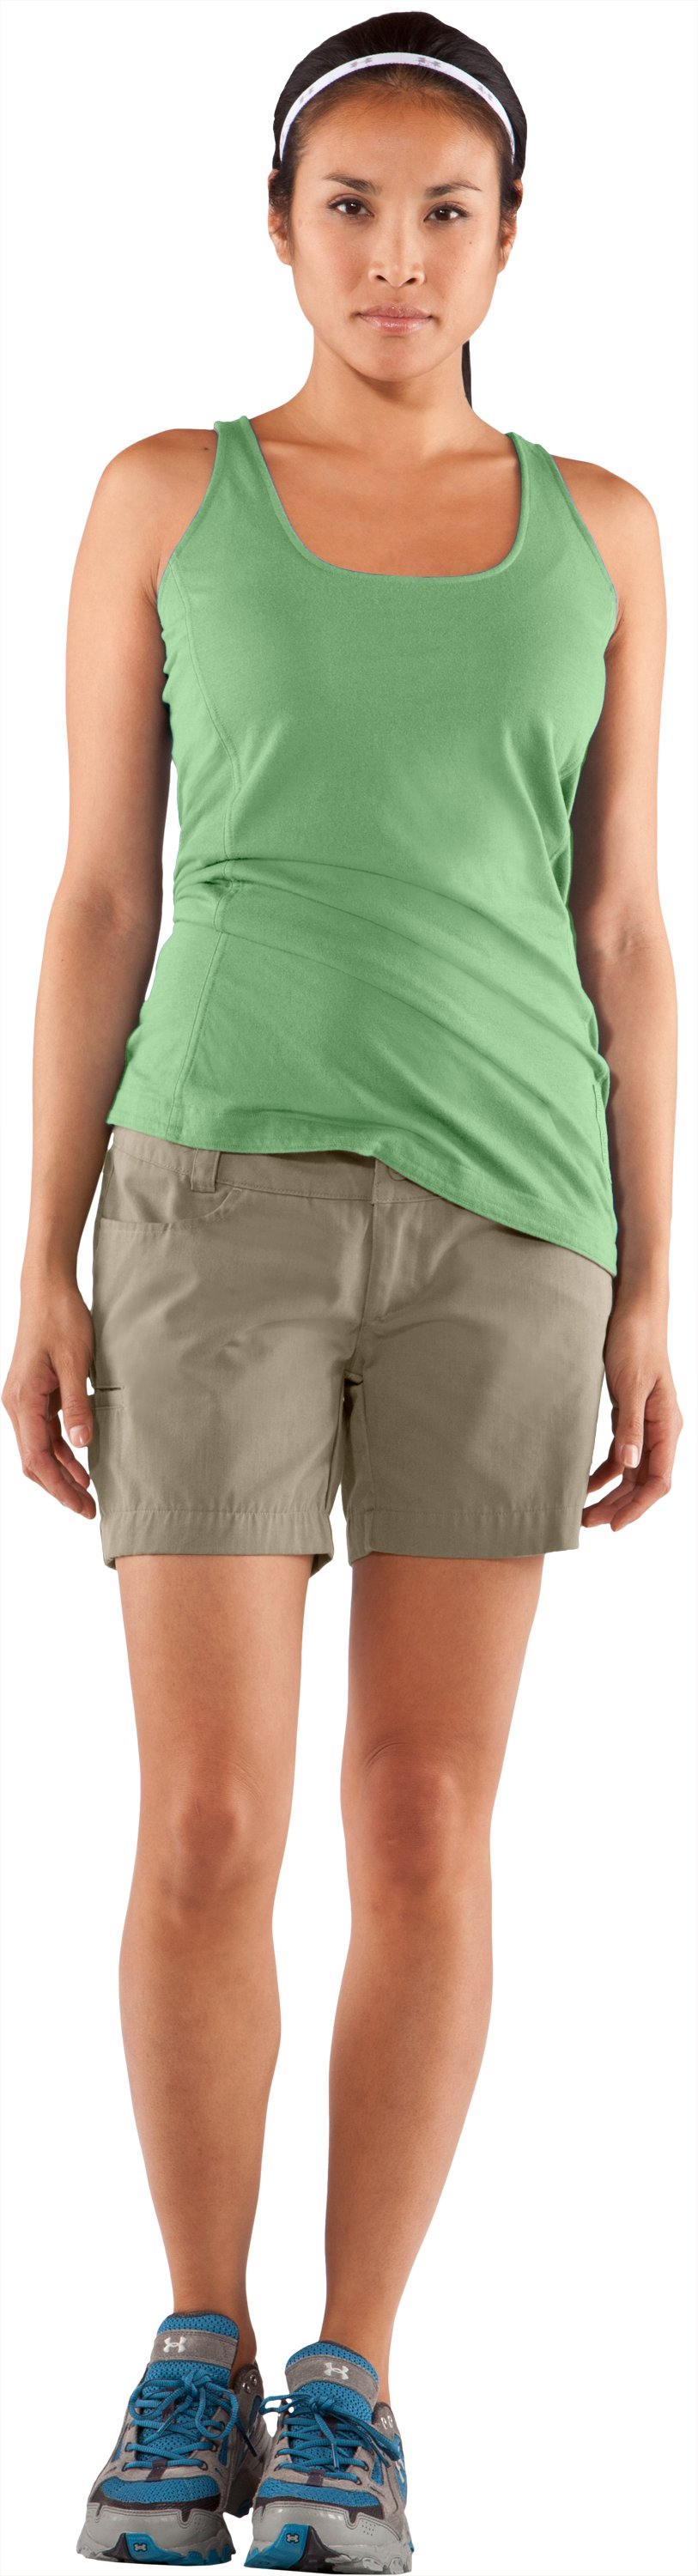 "Women's Calvert 5"" Hiking Short, Dune, zoomed image"